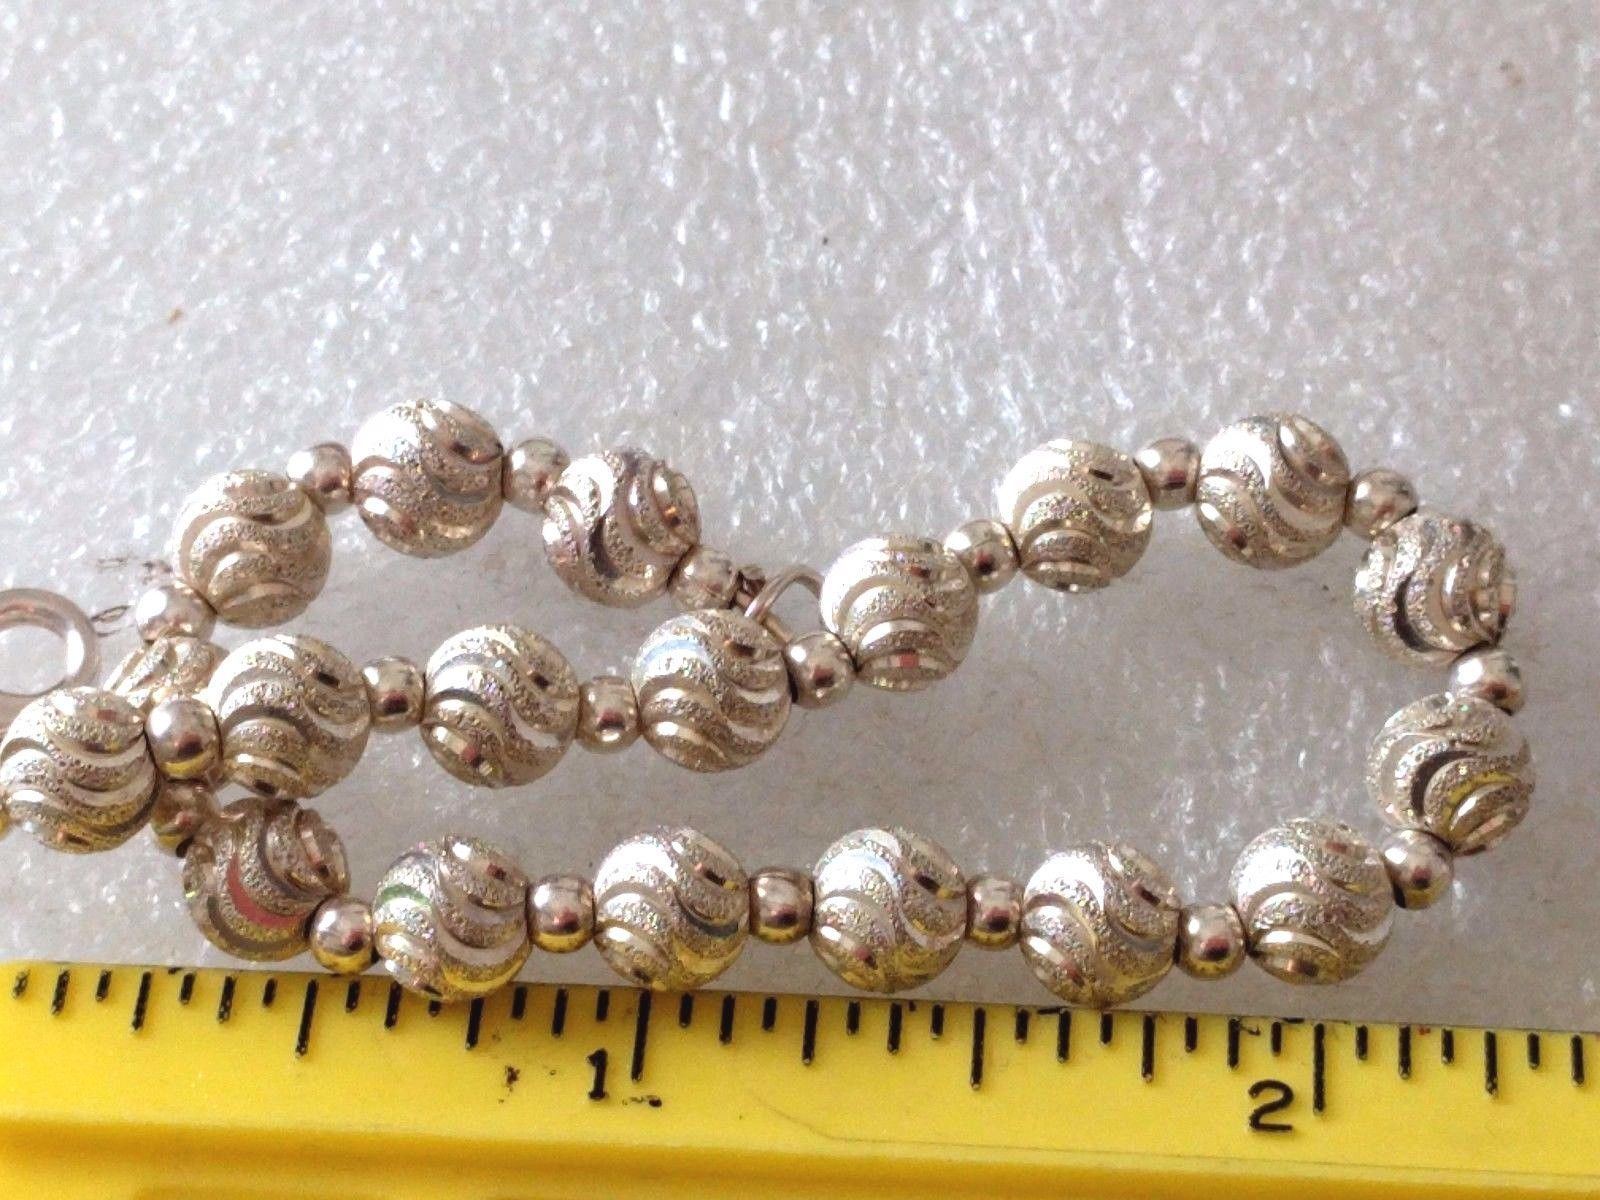 VINTAGE STERLING SILVER TEXTURED BALL BEADS MILOR? BRACELET ITALY